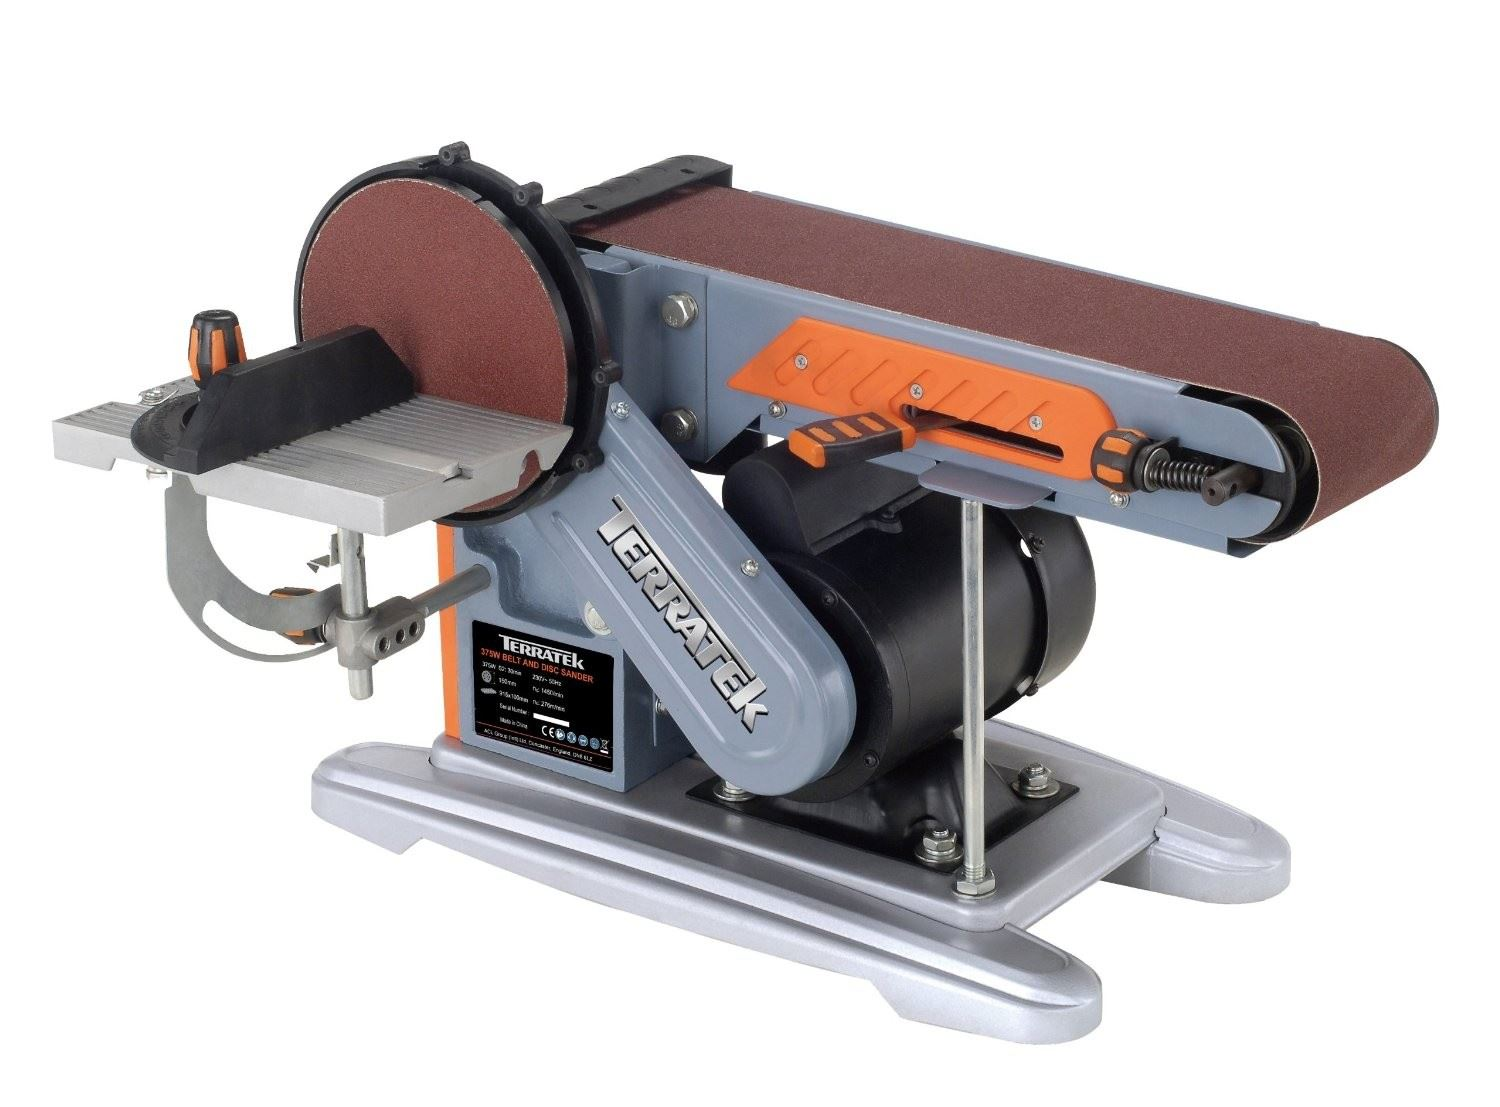 375w belt sander bench sander electric sander belt and disc sander ebay Bench belt sander